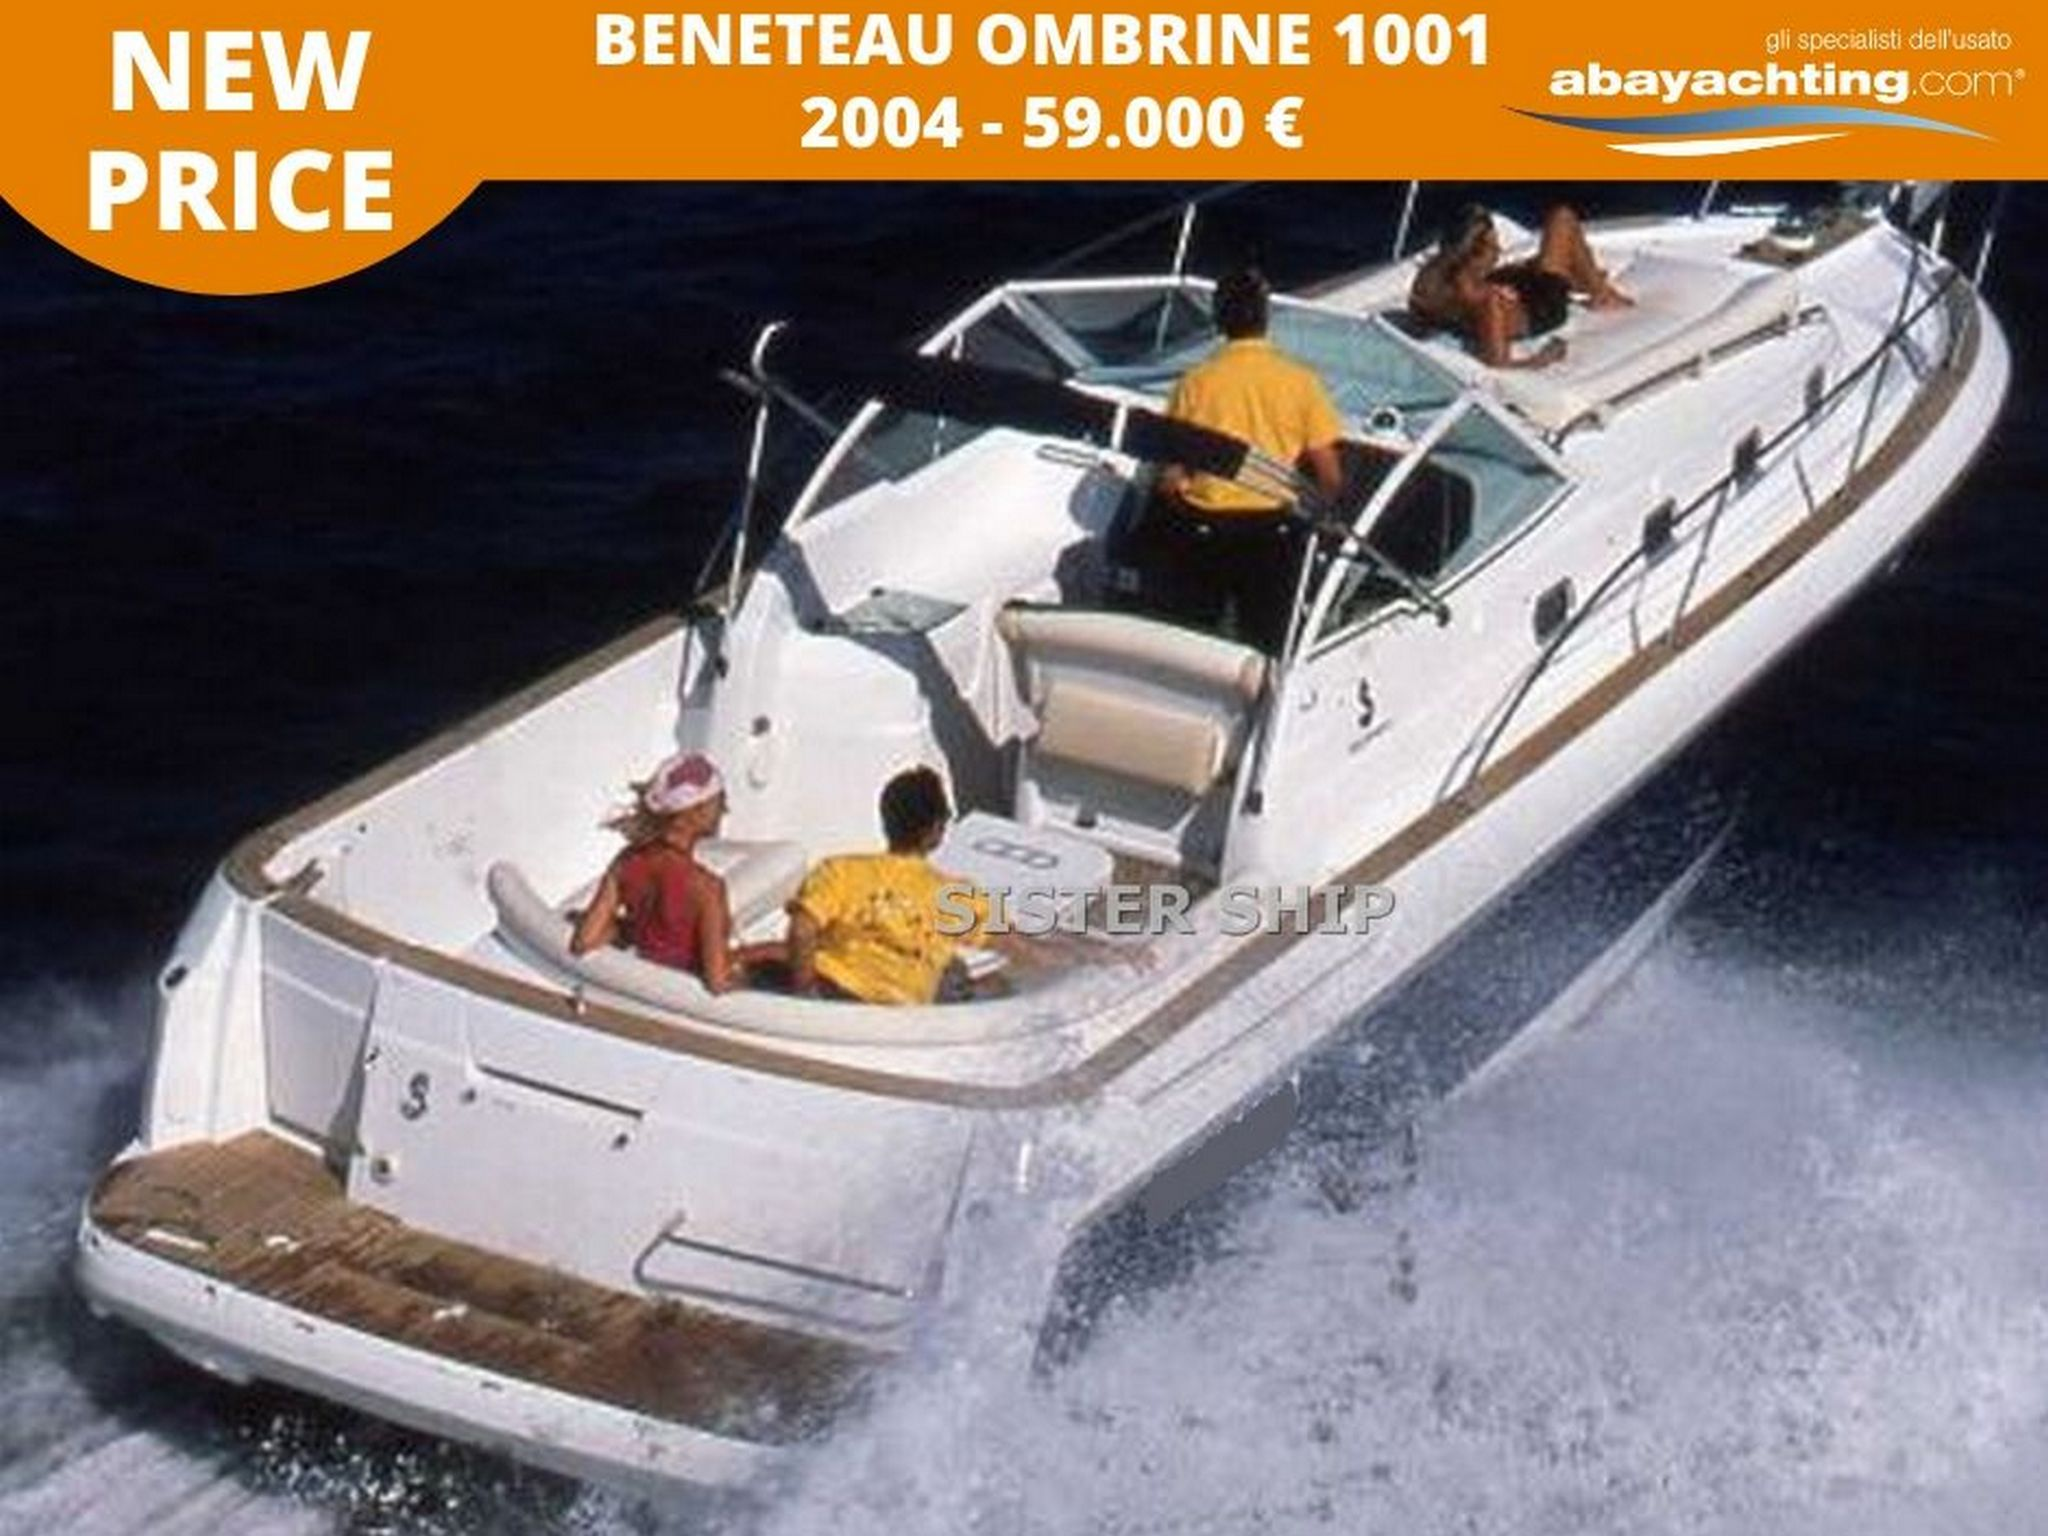 Price reduction Beneteau Ombrine 1001